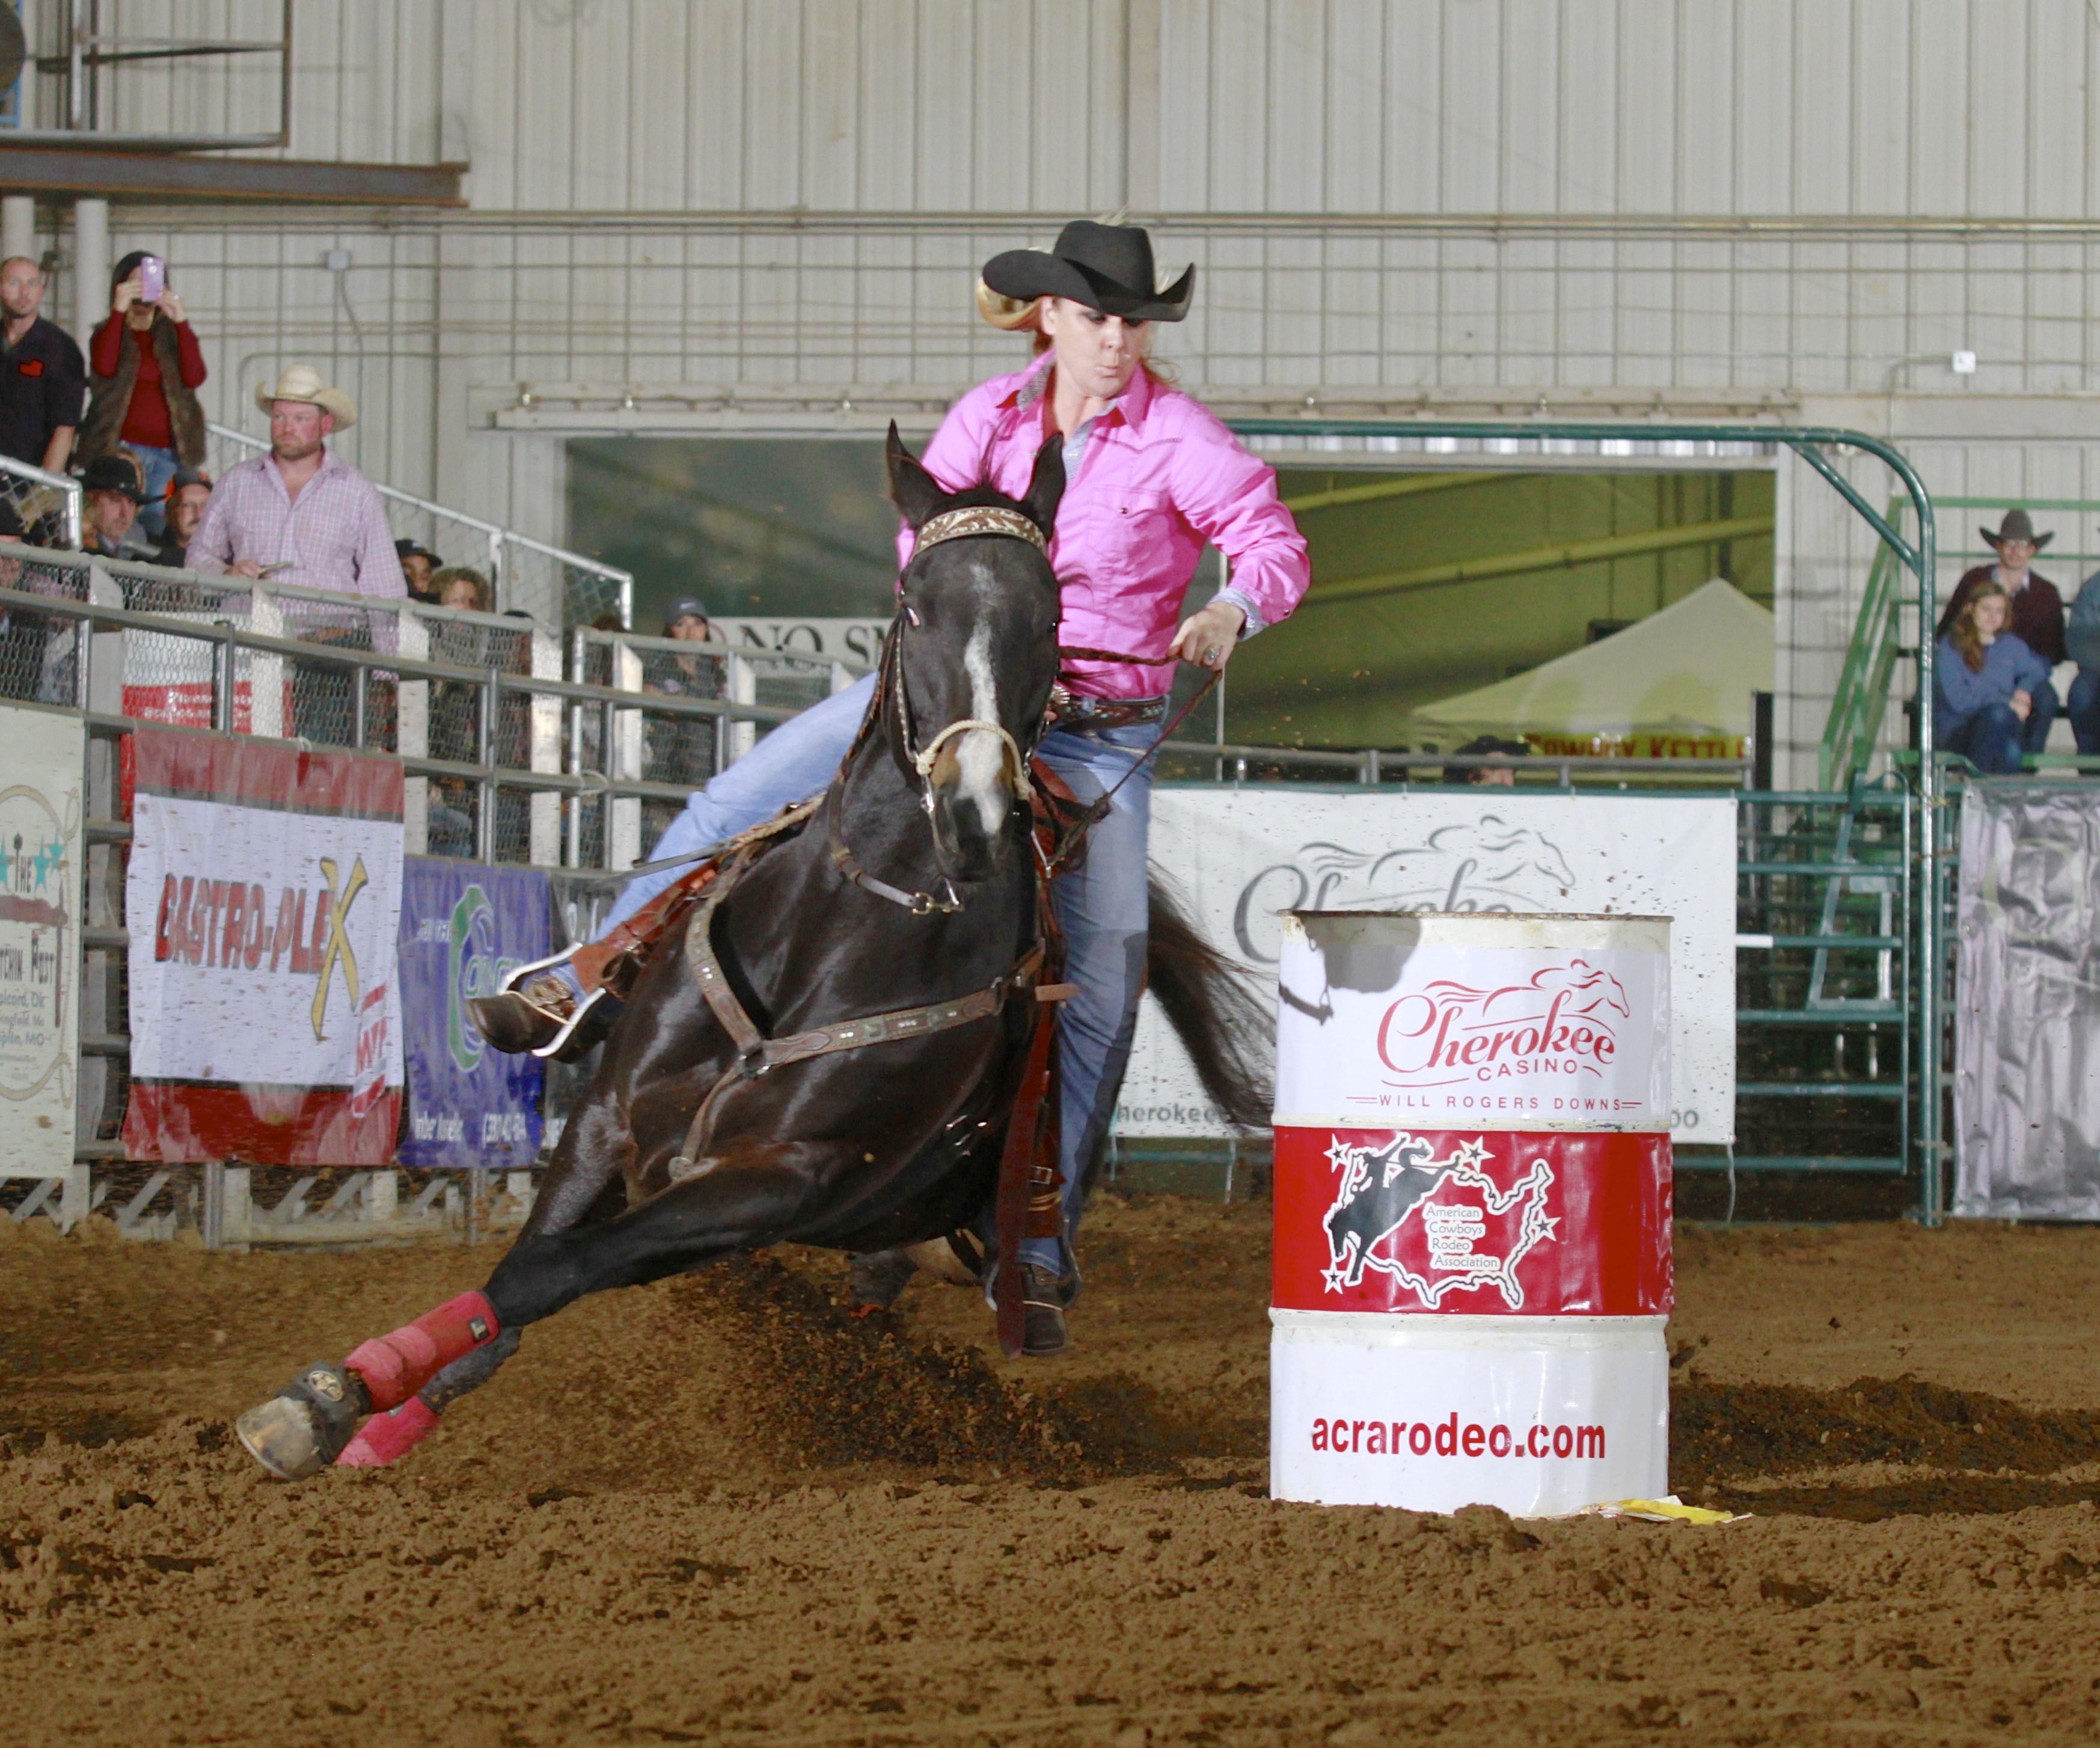 2017 Champion Barrel Racer - Leslie Smalygo